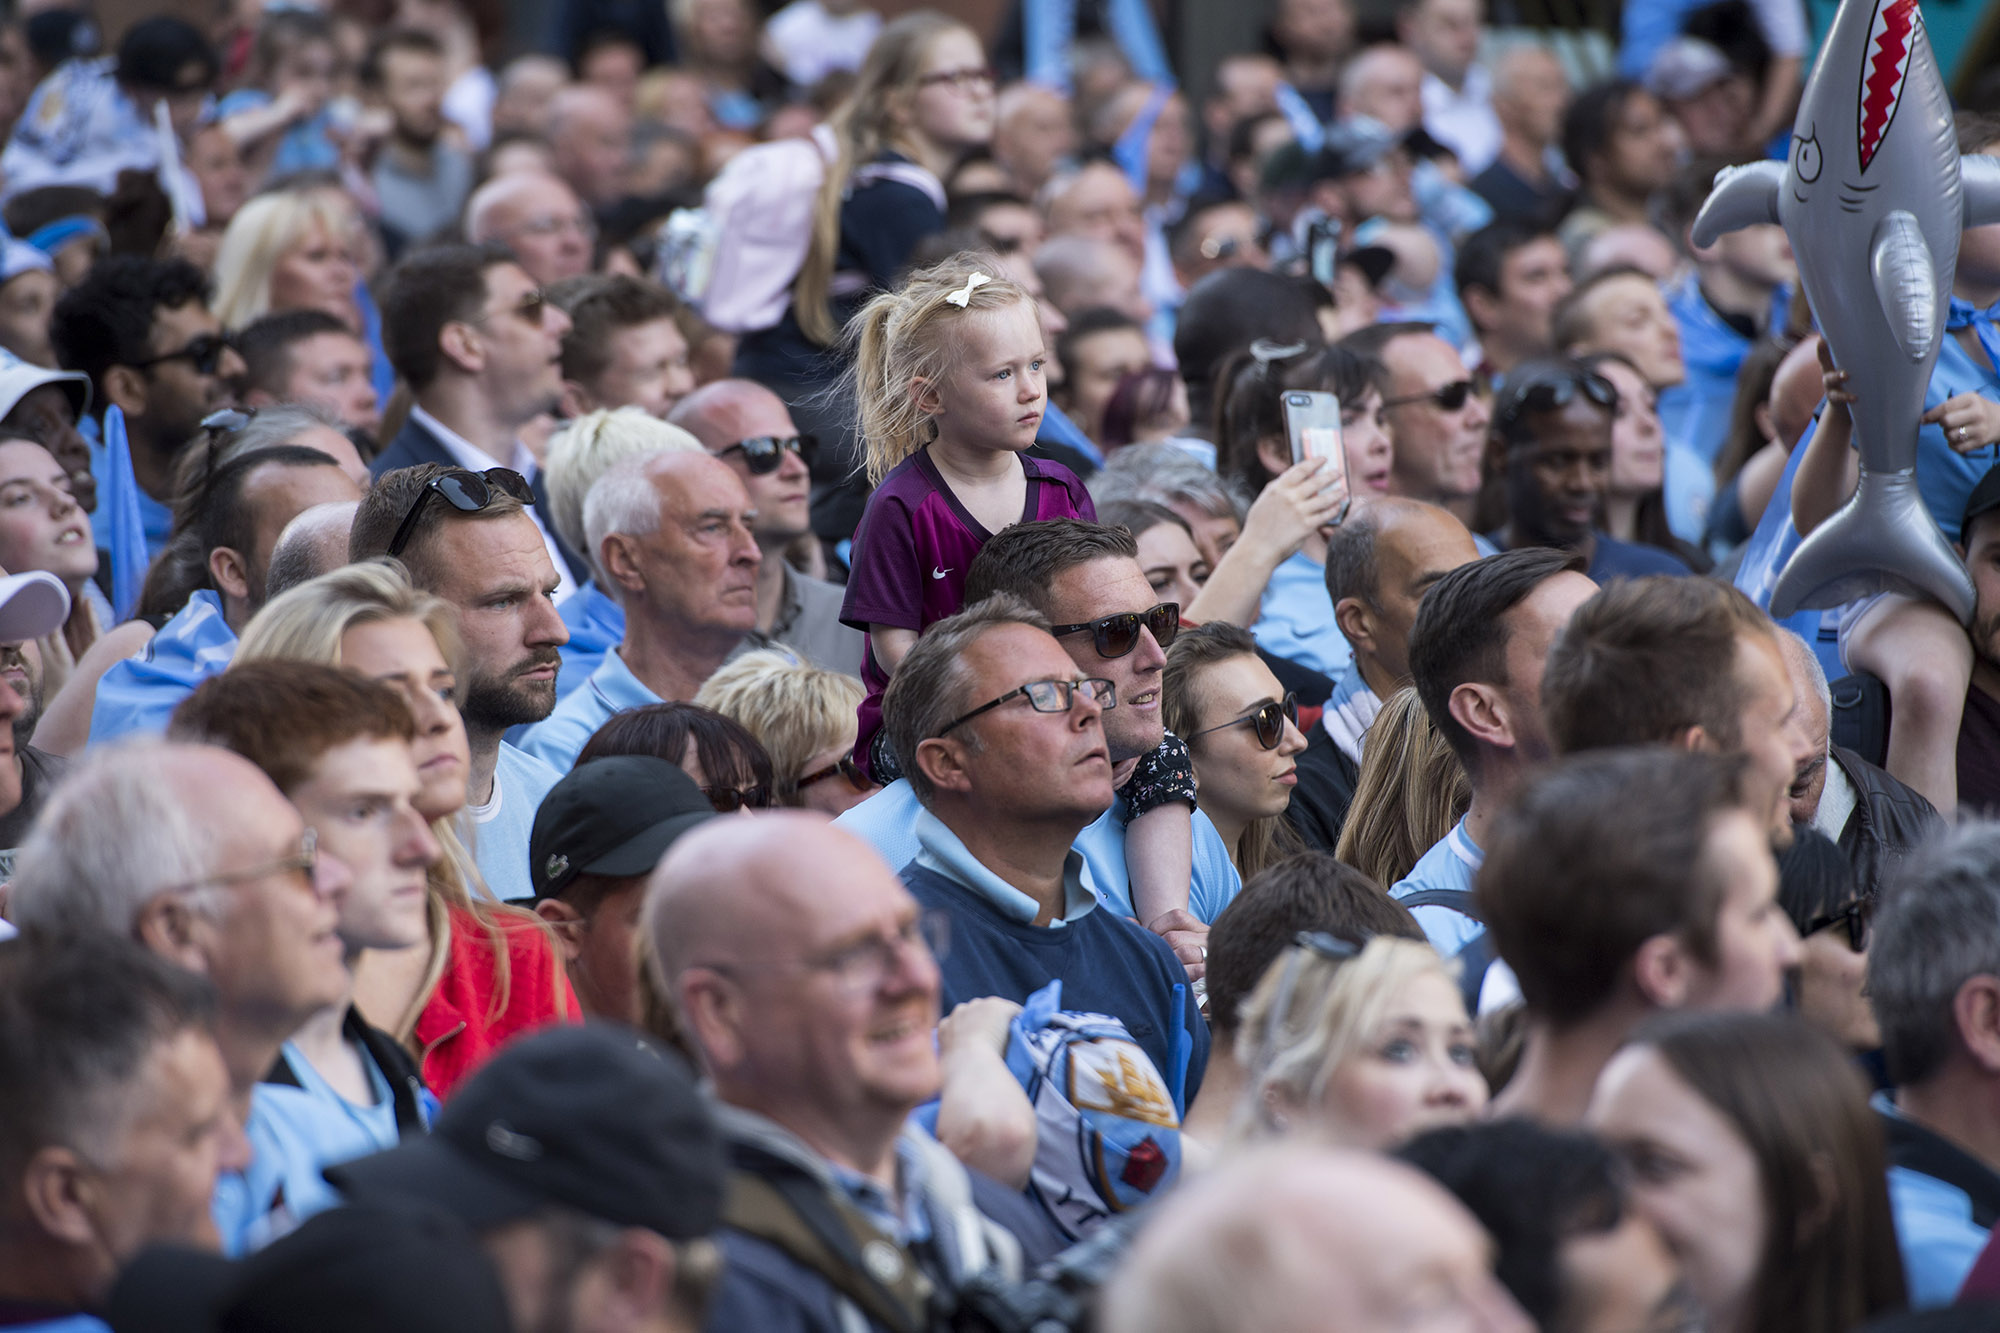 Manchester City Trophy Parade Jon Parker Lee Photographer photography Image ©Licensed to Manchester Evening News / Jon Parker Lee Manchester City celebrate their historic FA Premier League title win with a trophy parade through the streets of Manchester on Monday 14 May 2018. Picture by Jon Parker Lee